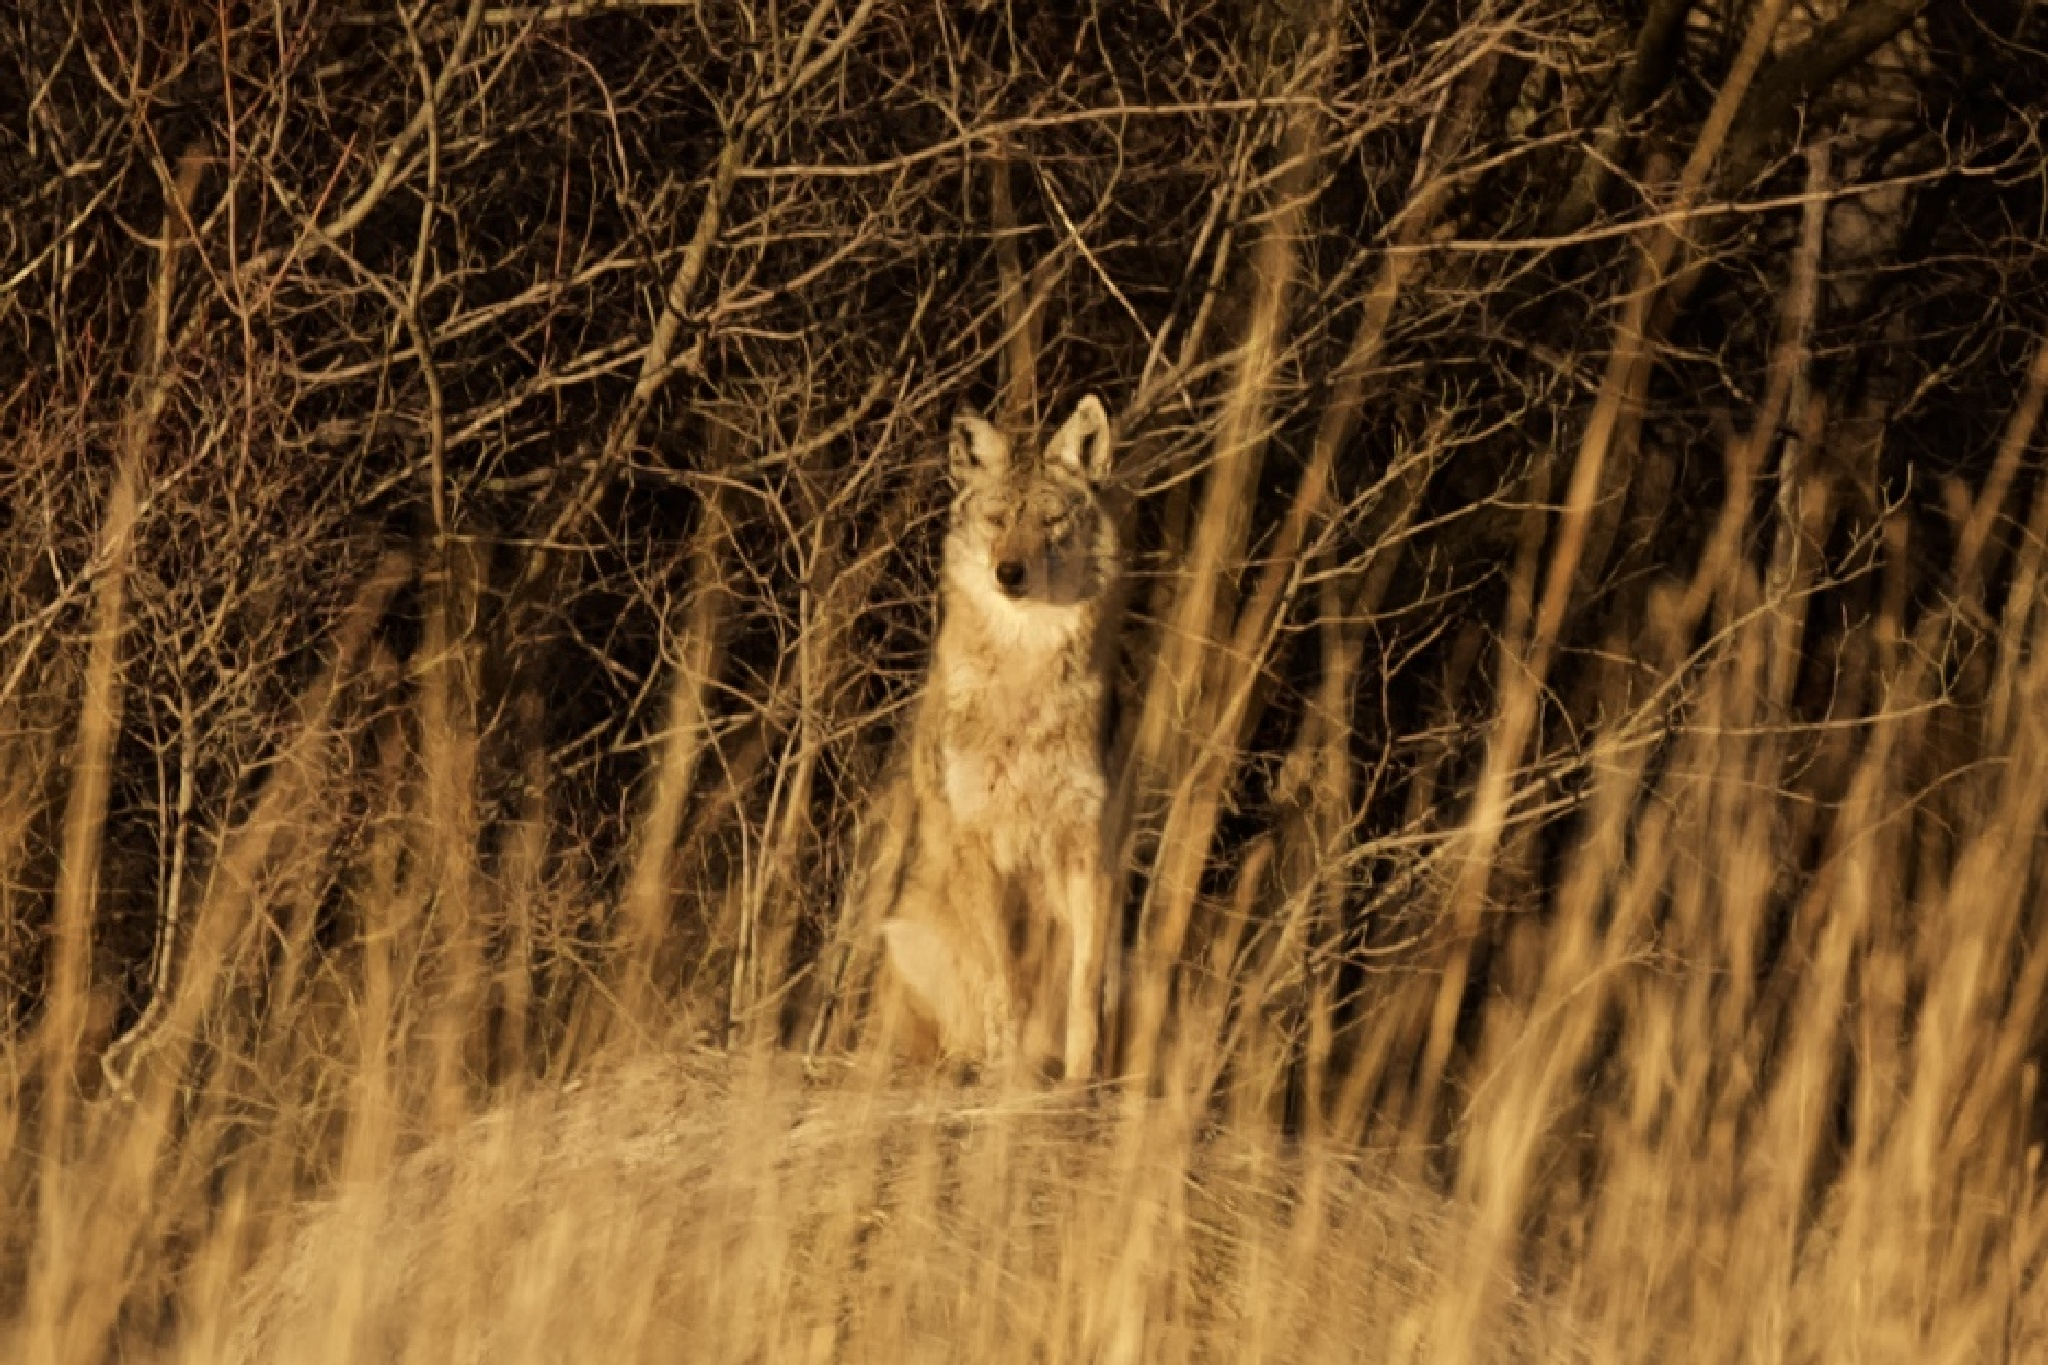 Coyote by brutale910crb